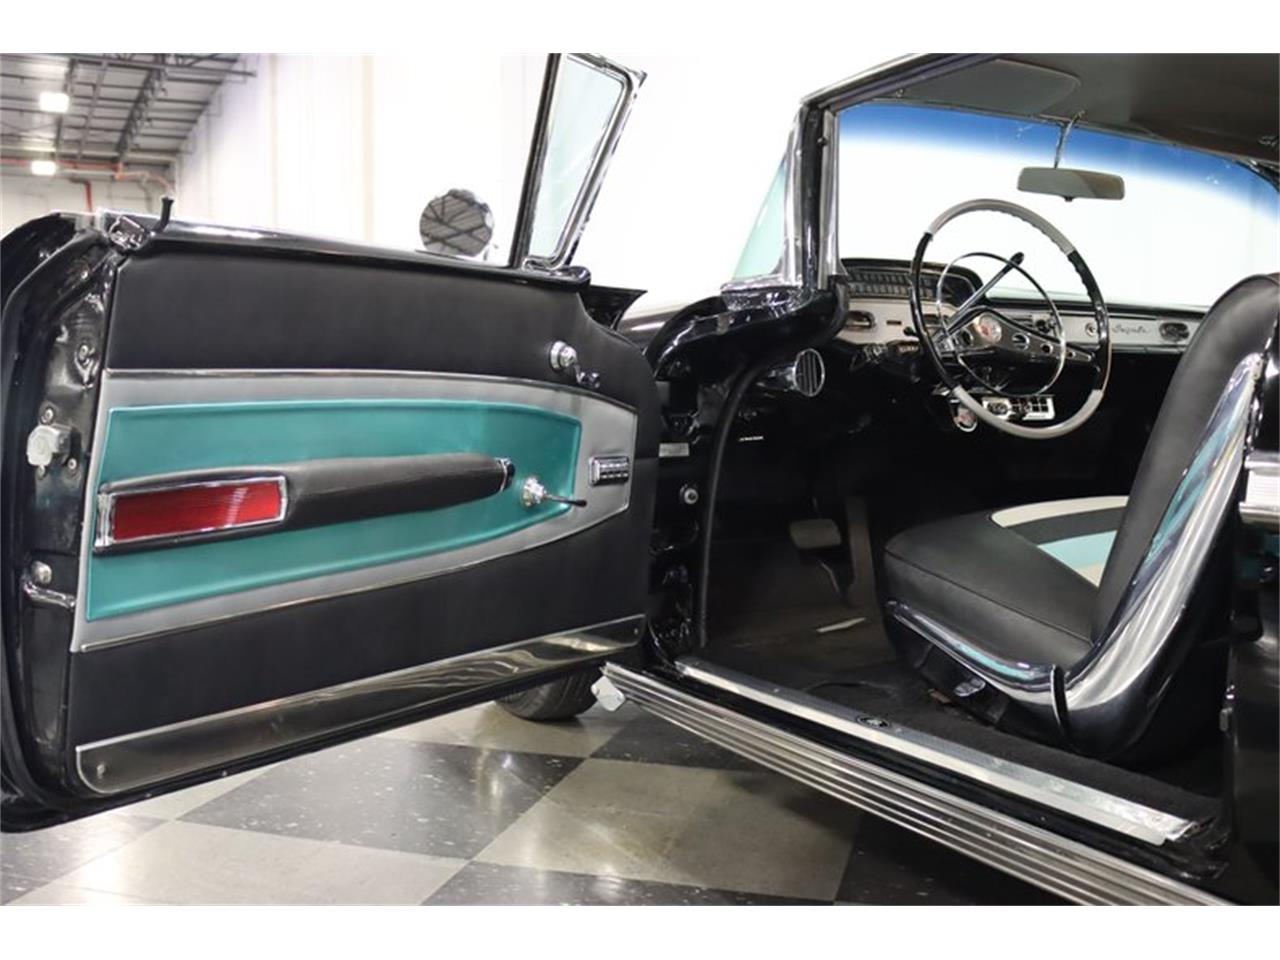 1958 Chevrolet Impala (CC-1389126) for sale in Ft Worth, Texas